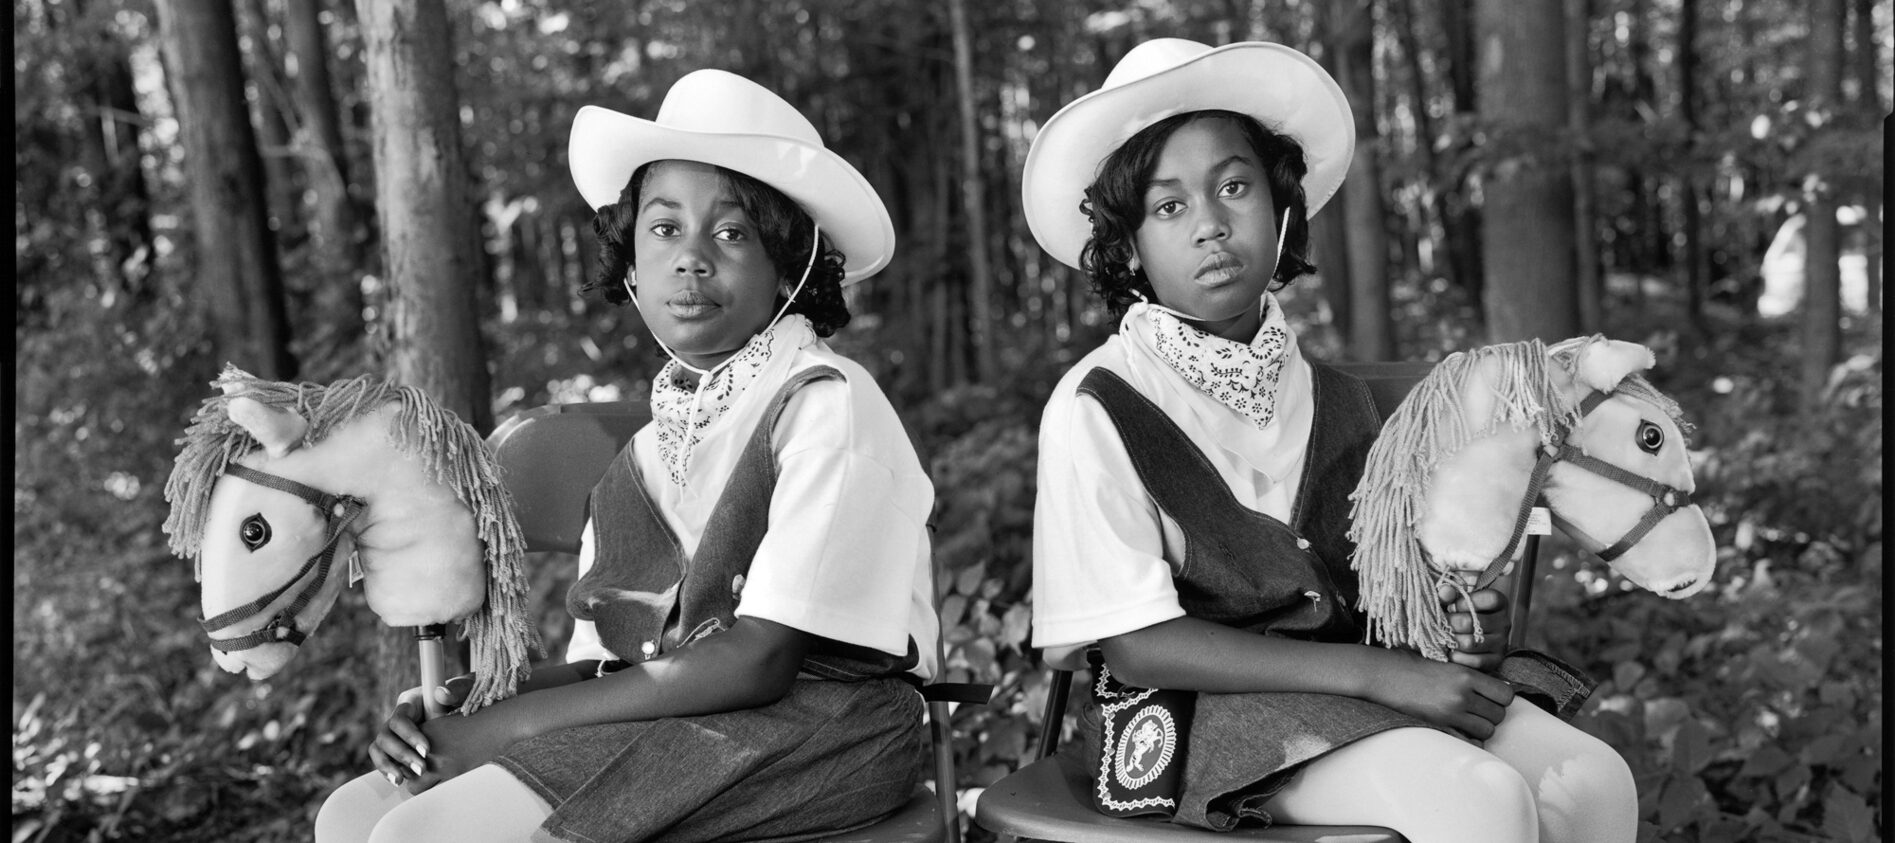 A black and white photograph of two black teens sitting in folding chairs, facing the camera with their bodies angled in opposite directions. They wear matching cowboy hats, bandanas around their necks, vests, white tights, and white western-style boots. They hold two white hobby horses in their hands. In the background are trees and a forest.